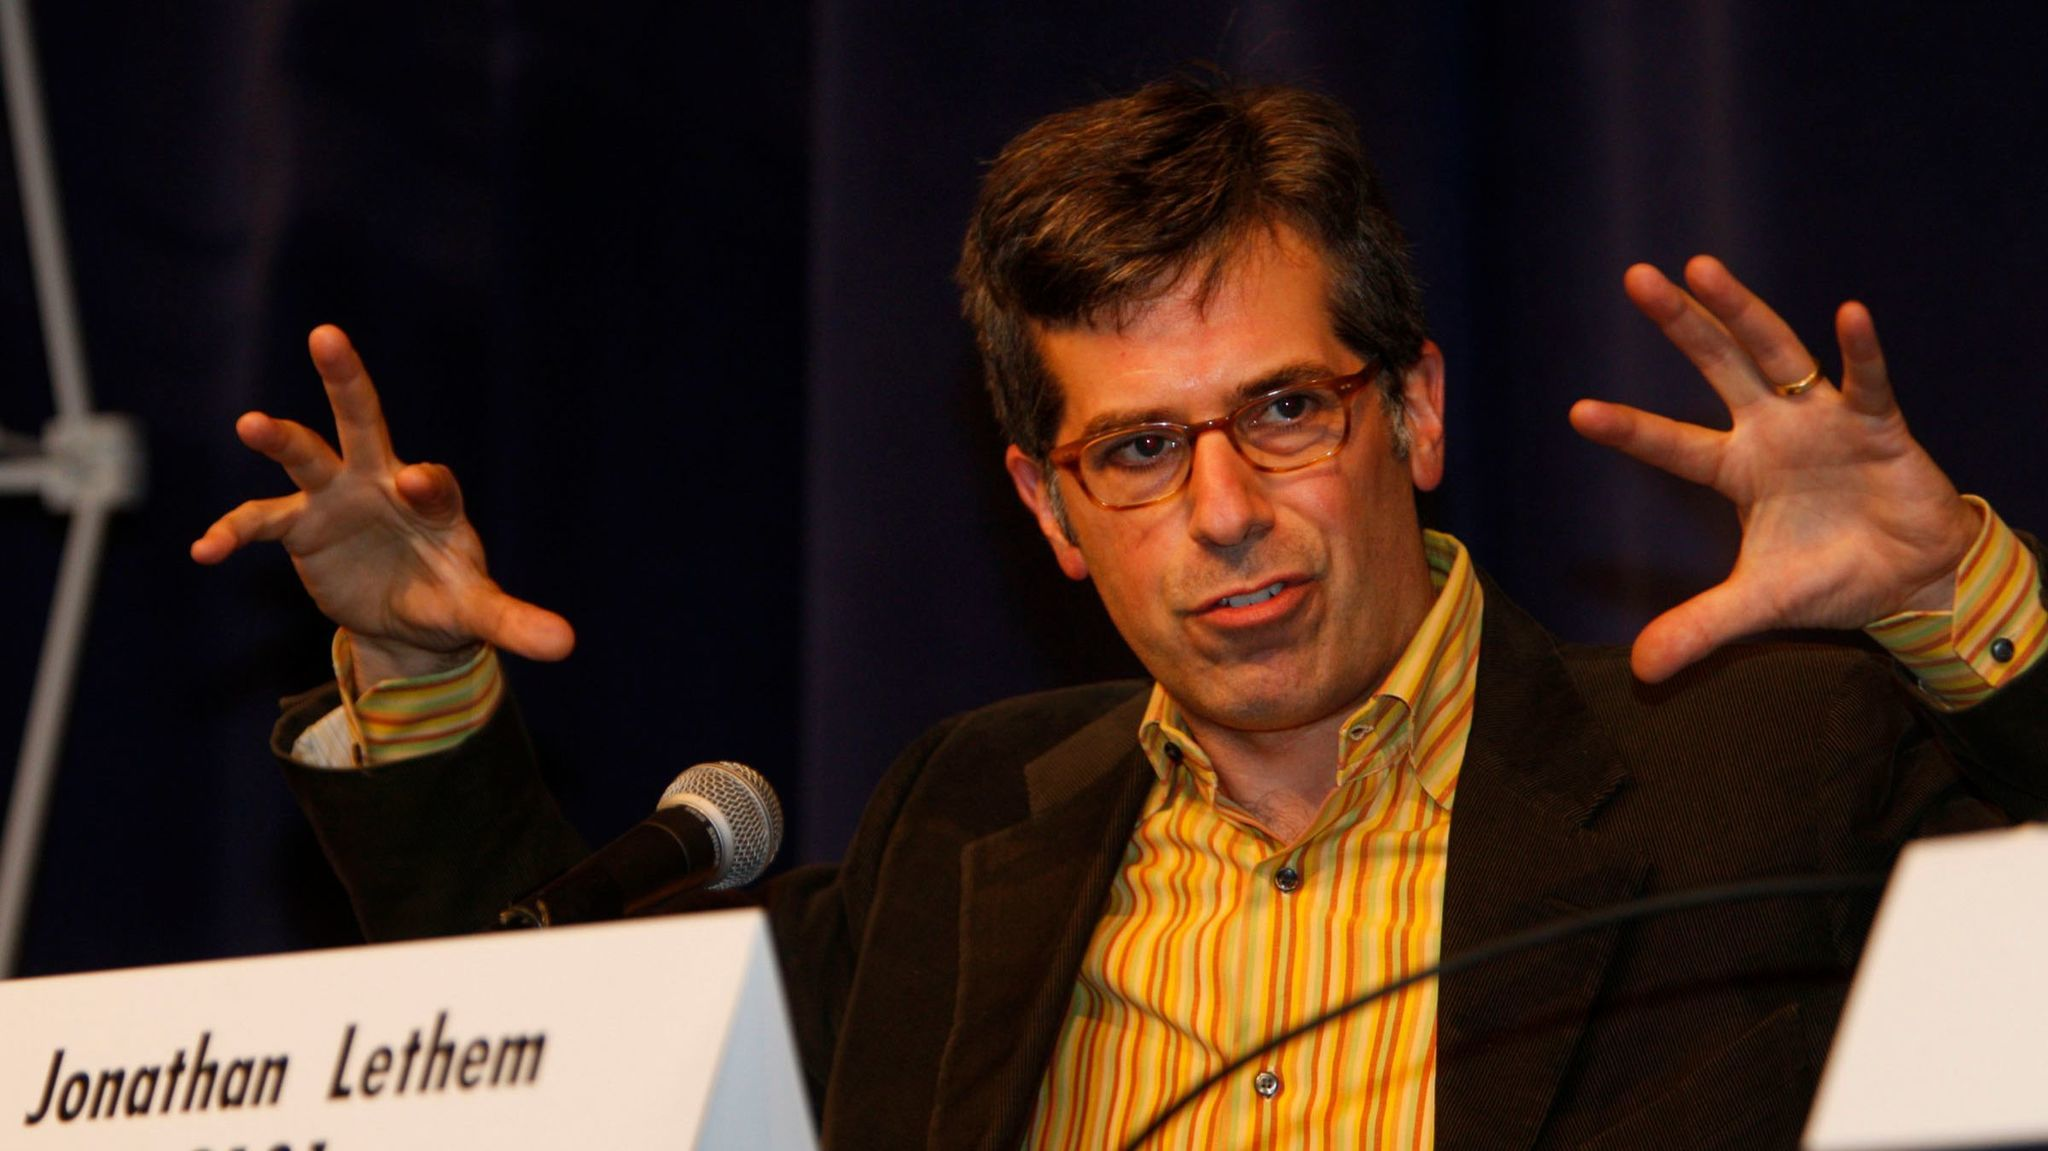 Jonathan Lethem at the Festival of Books in 2011.